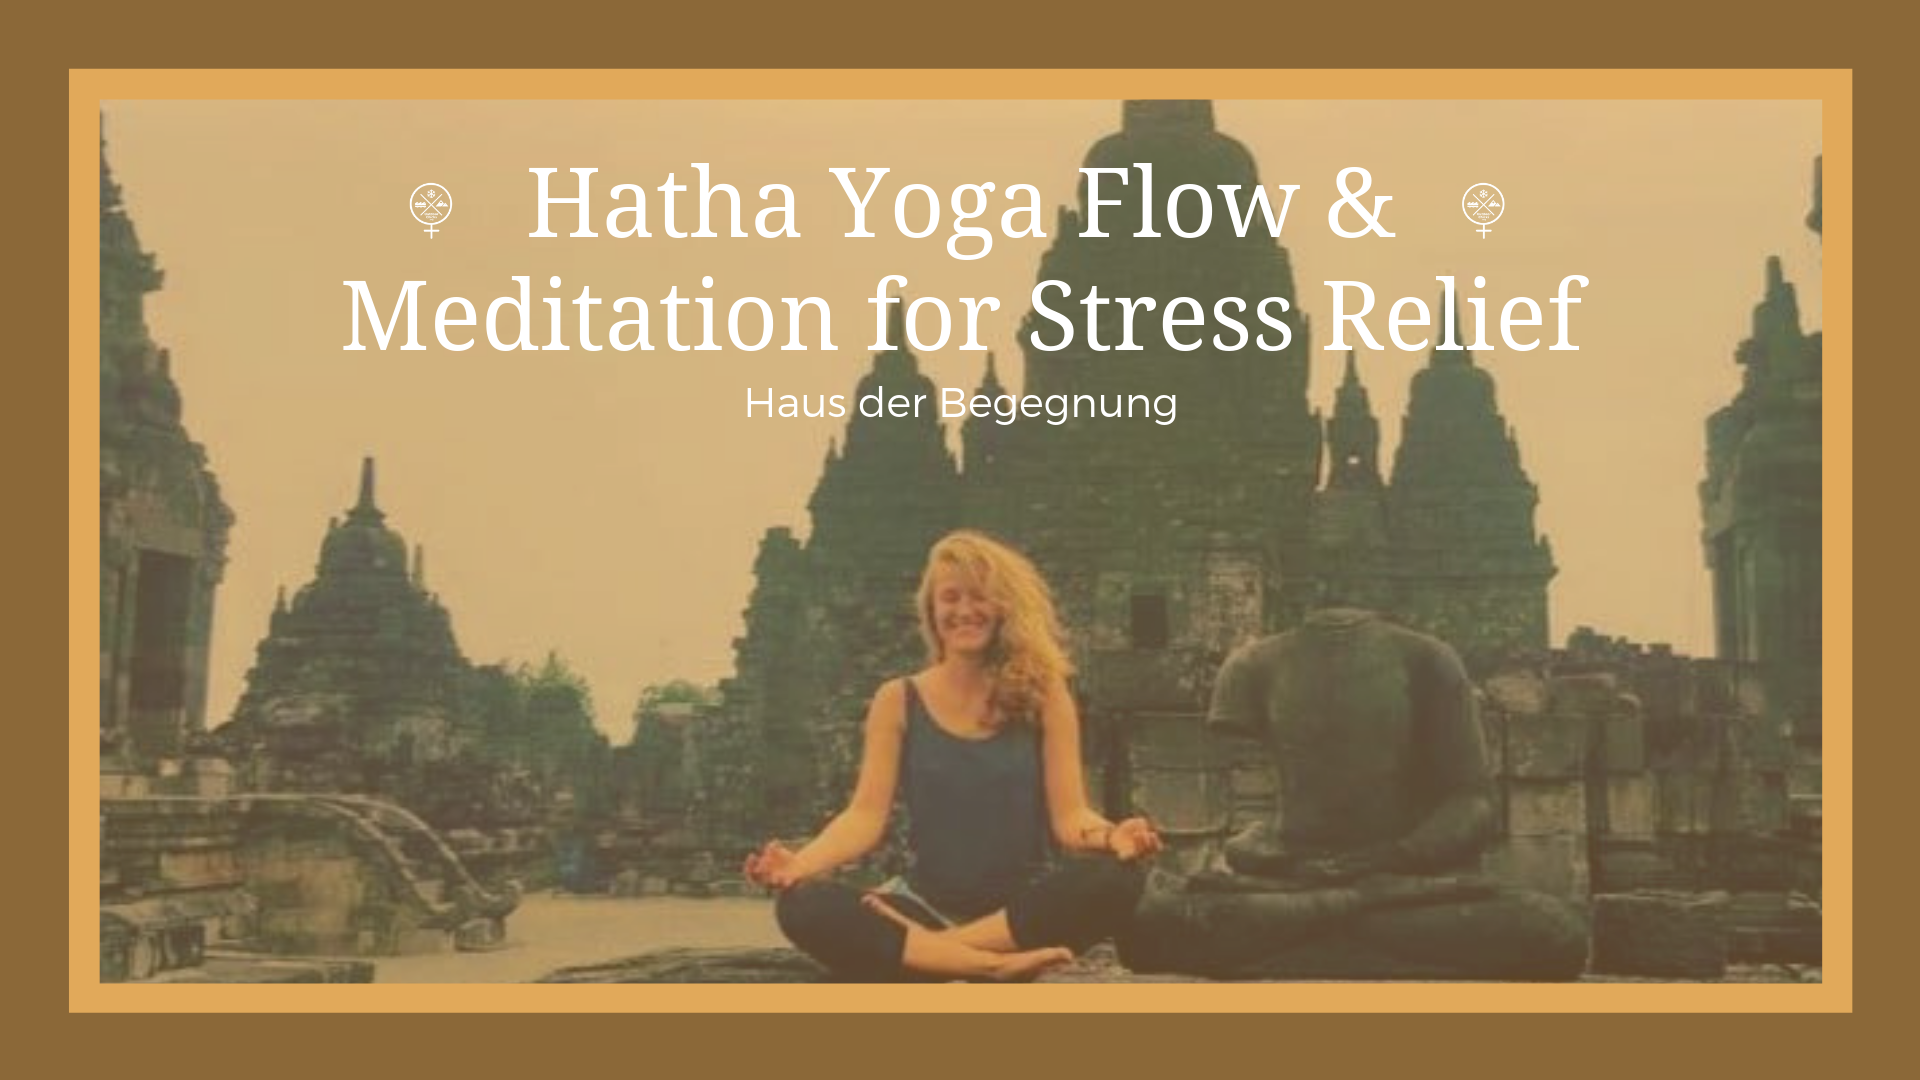 Hatha Flow Yoga And Meditation For Stress Relief